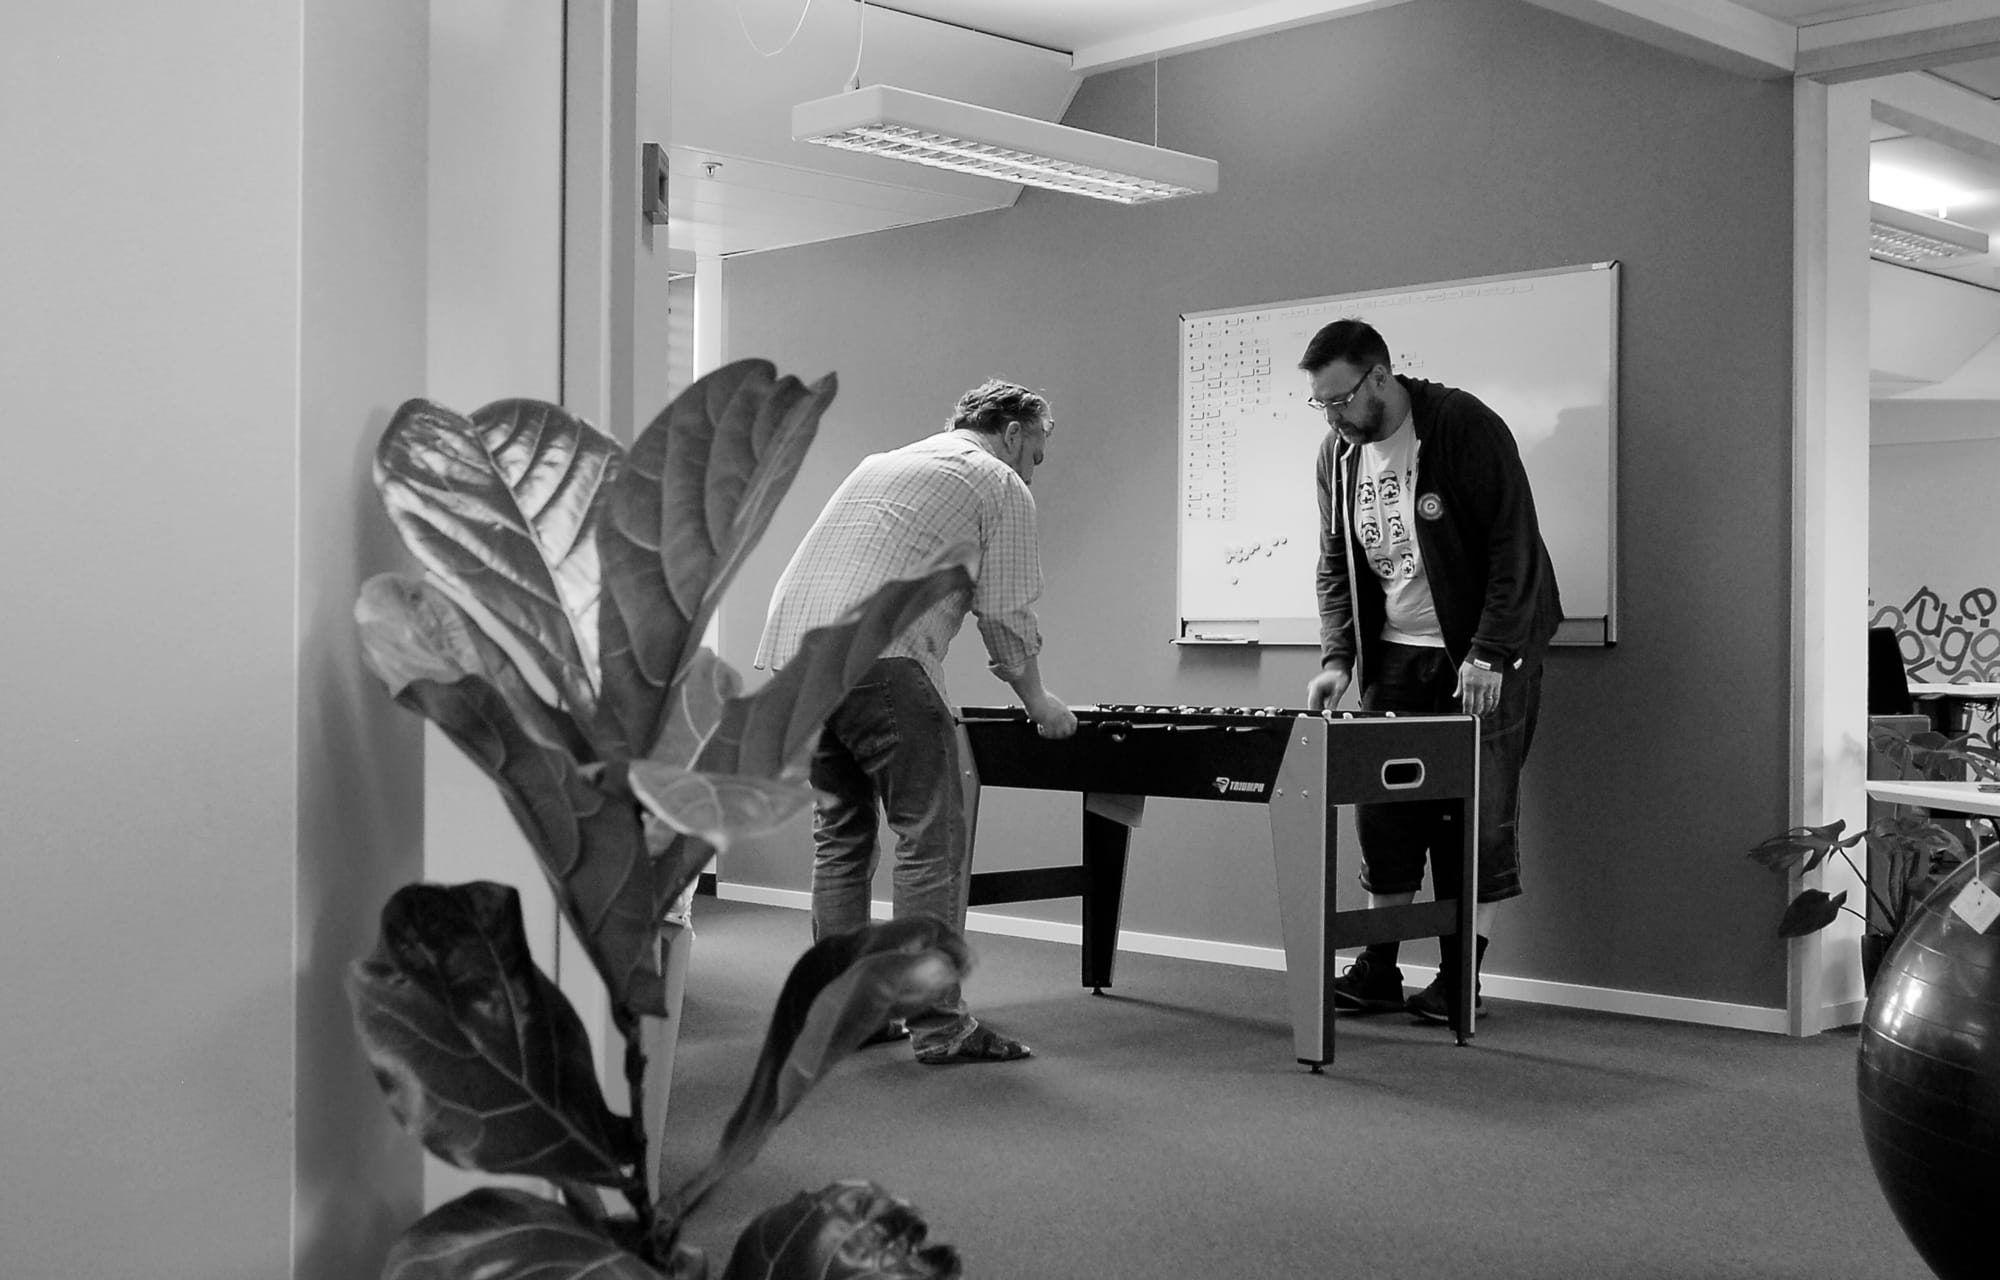 Two employees at The Cloud People playing fussball in the office.